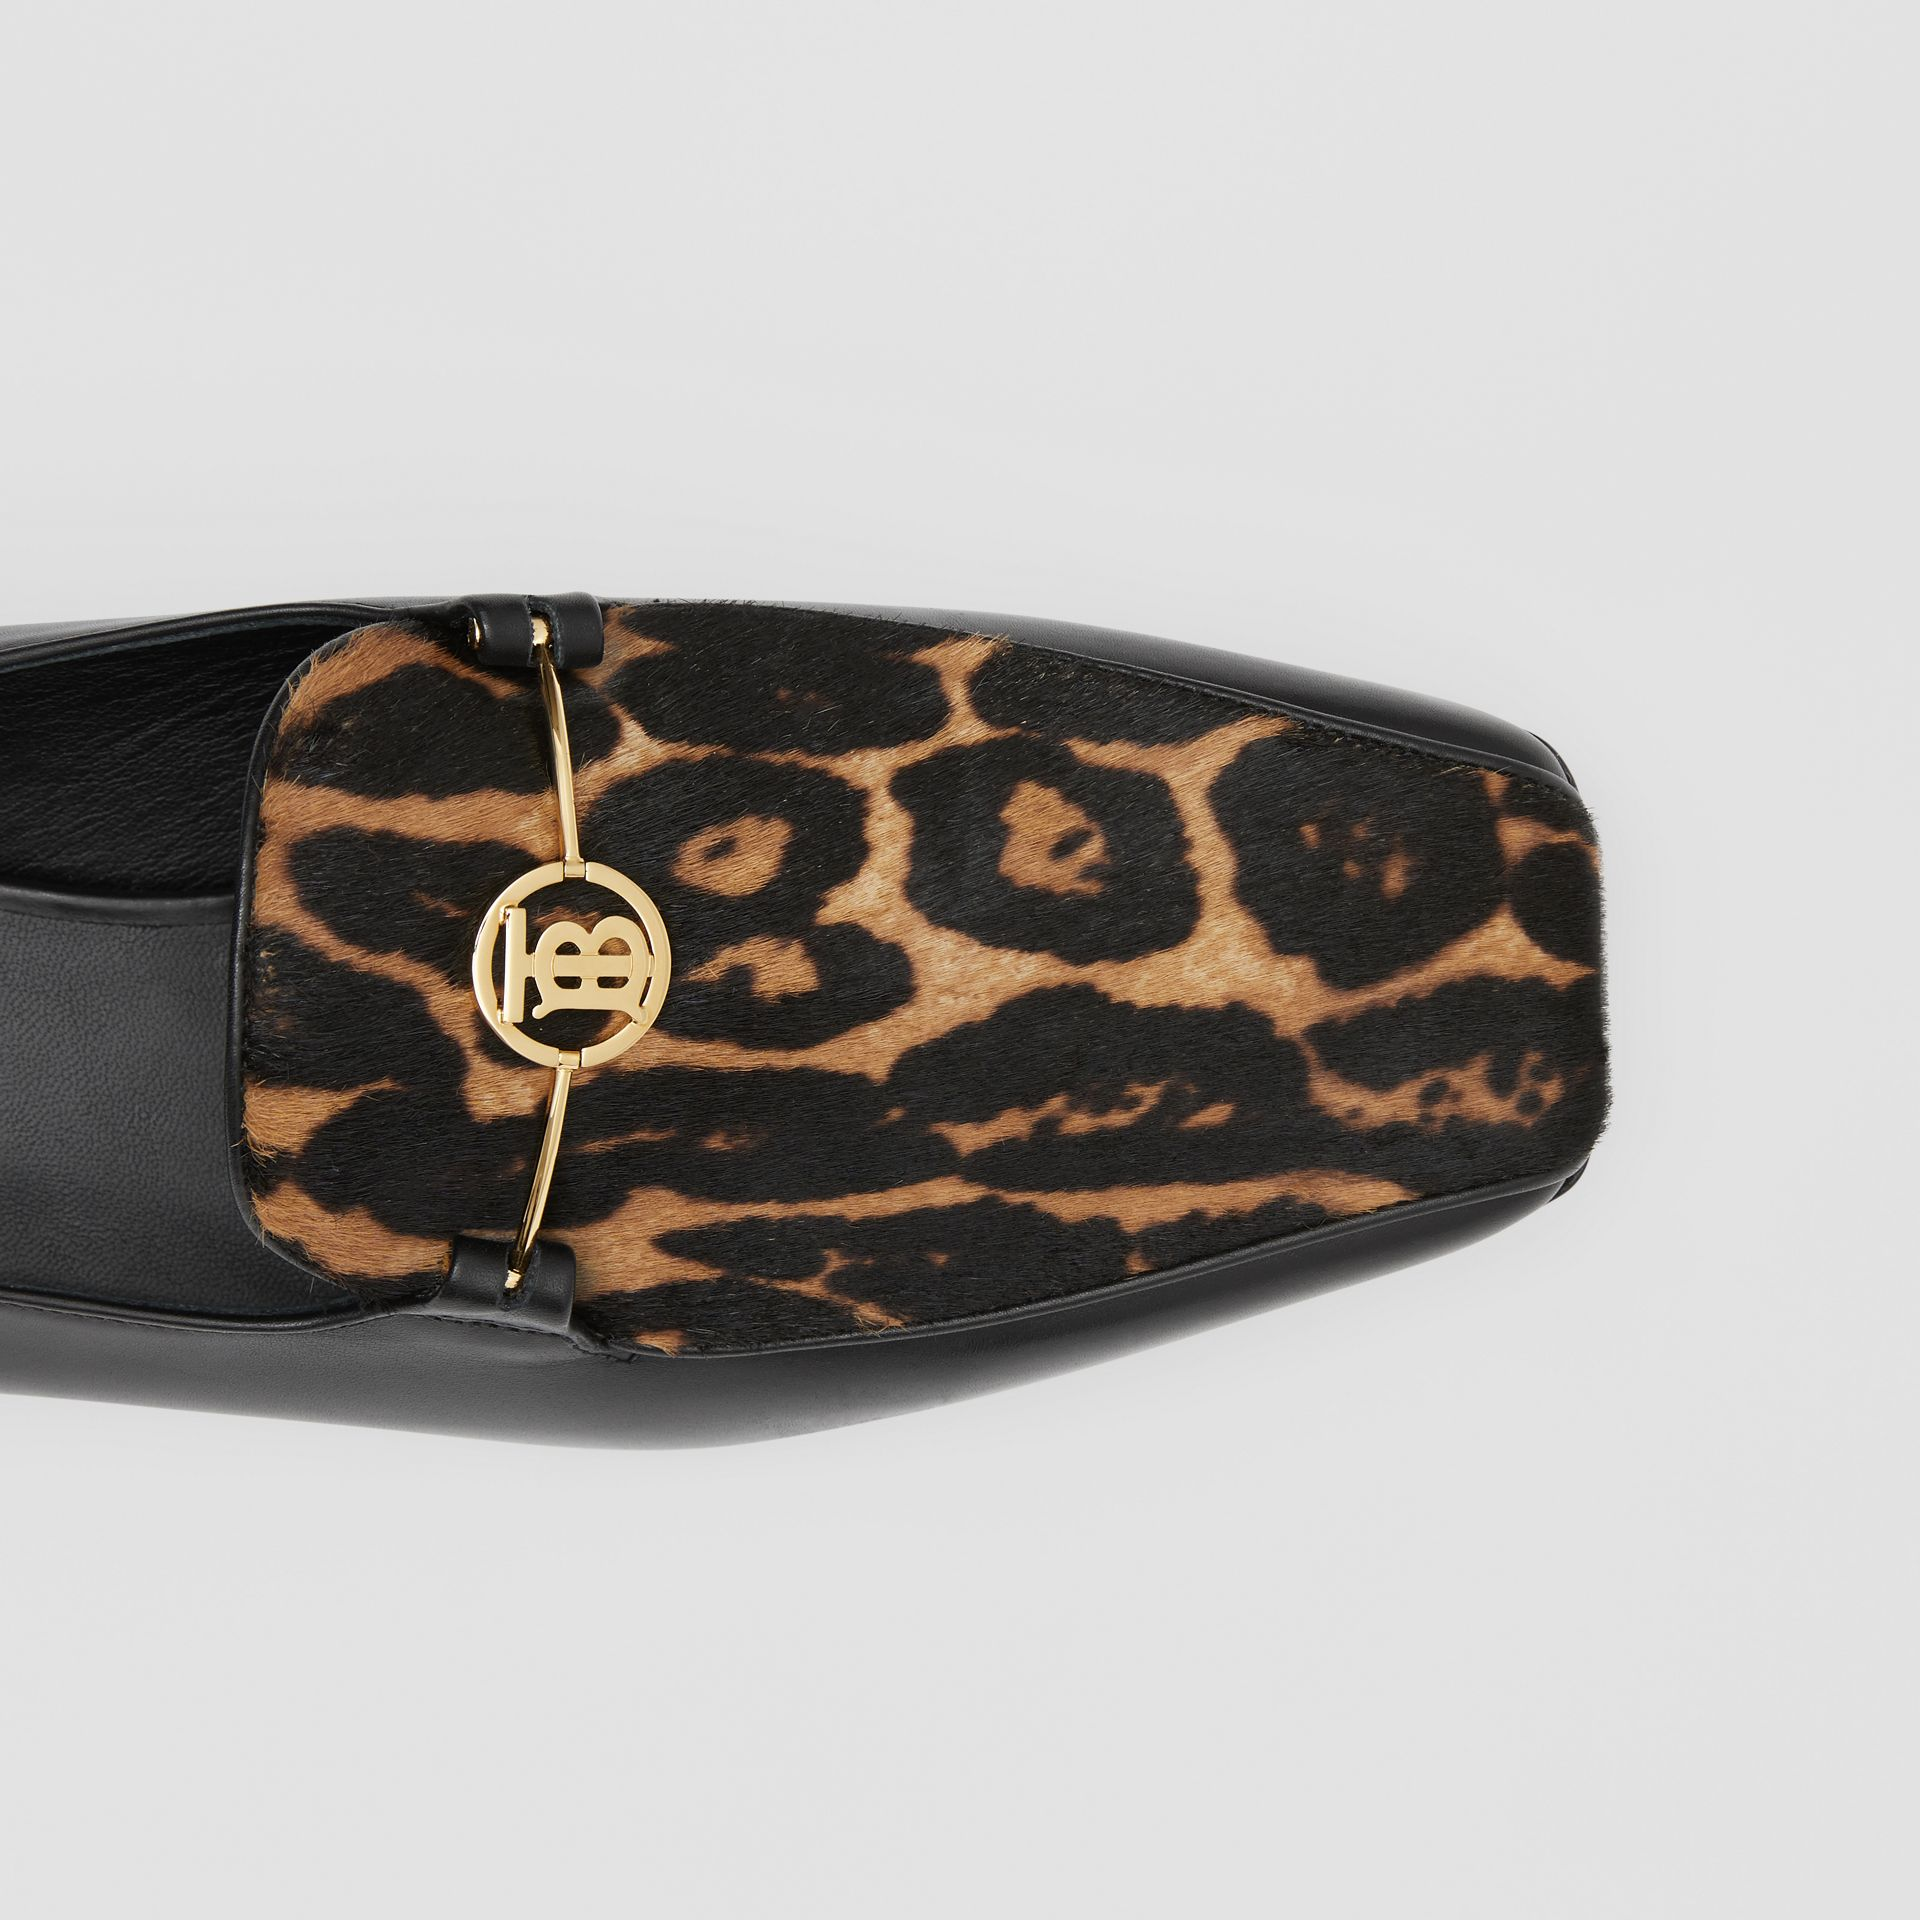 Leopard Print Calf Hair and Leather Loafers in Black/leopard - Women | Burberry United Kingdom - gallery image 1